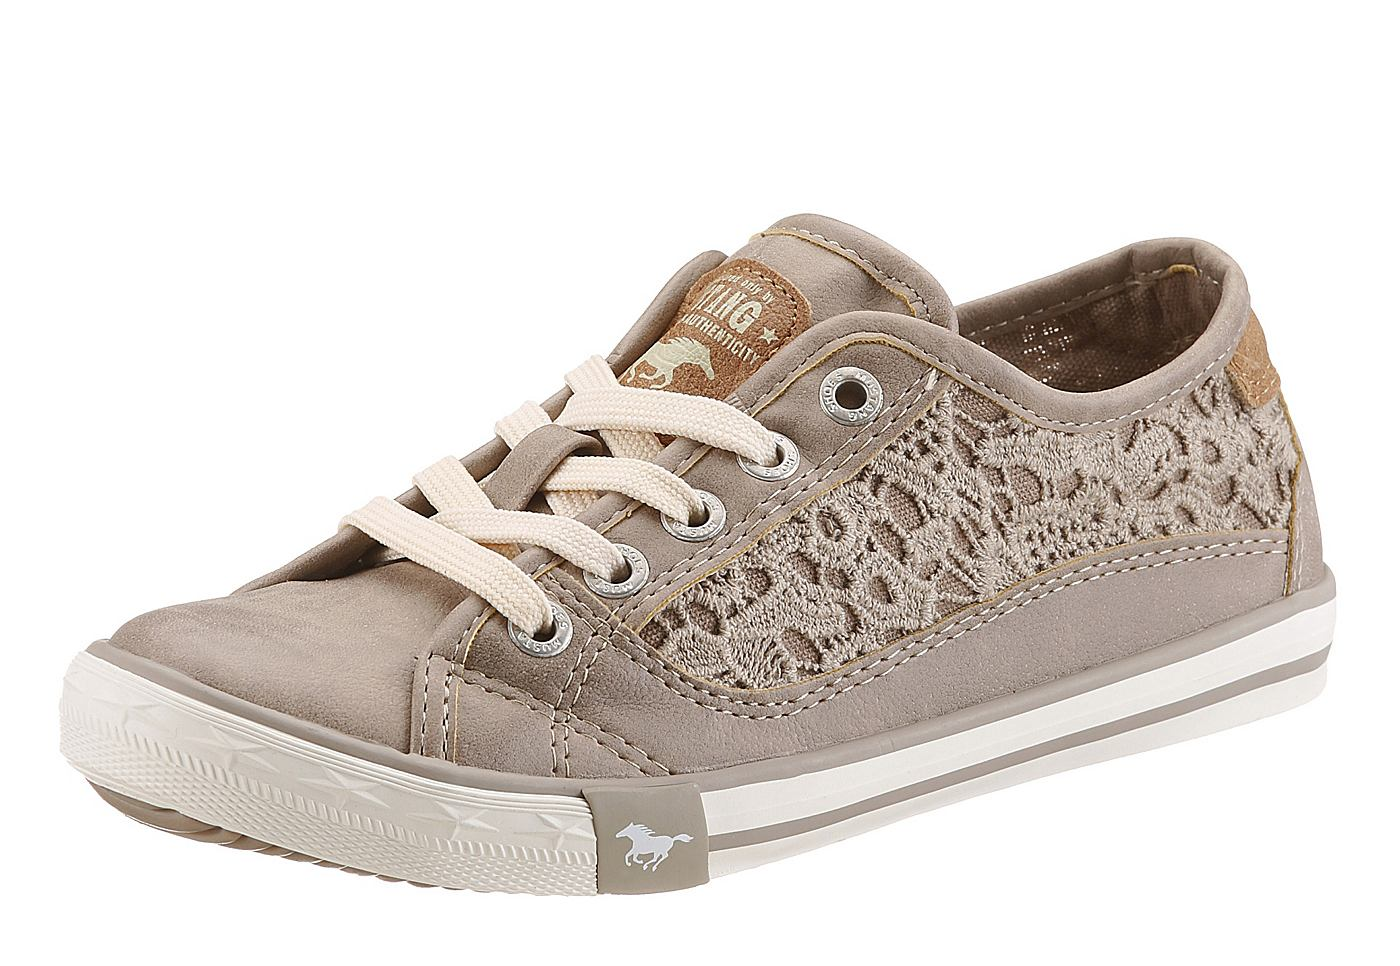 release date price reduced size 40 chaussure adidas dentelle femme